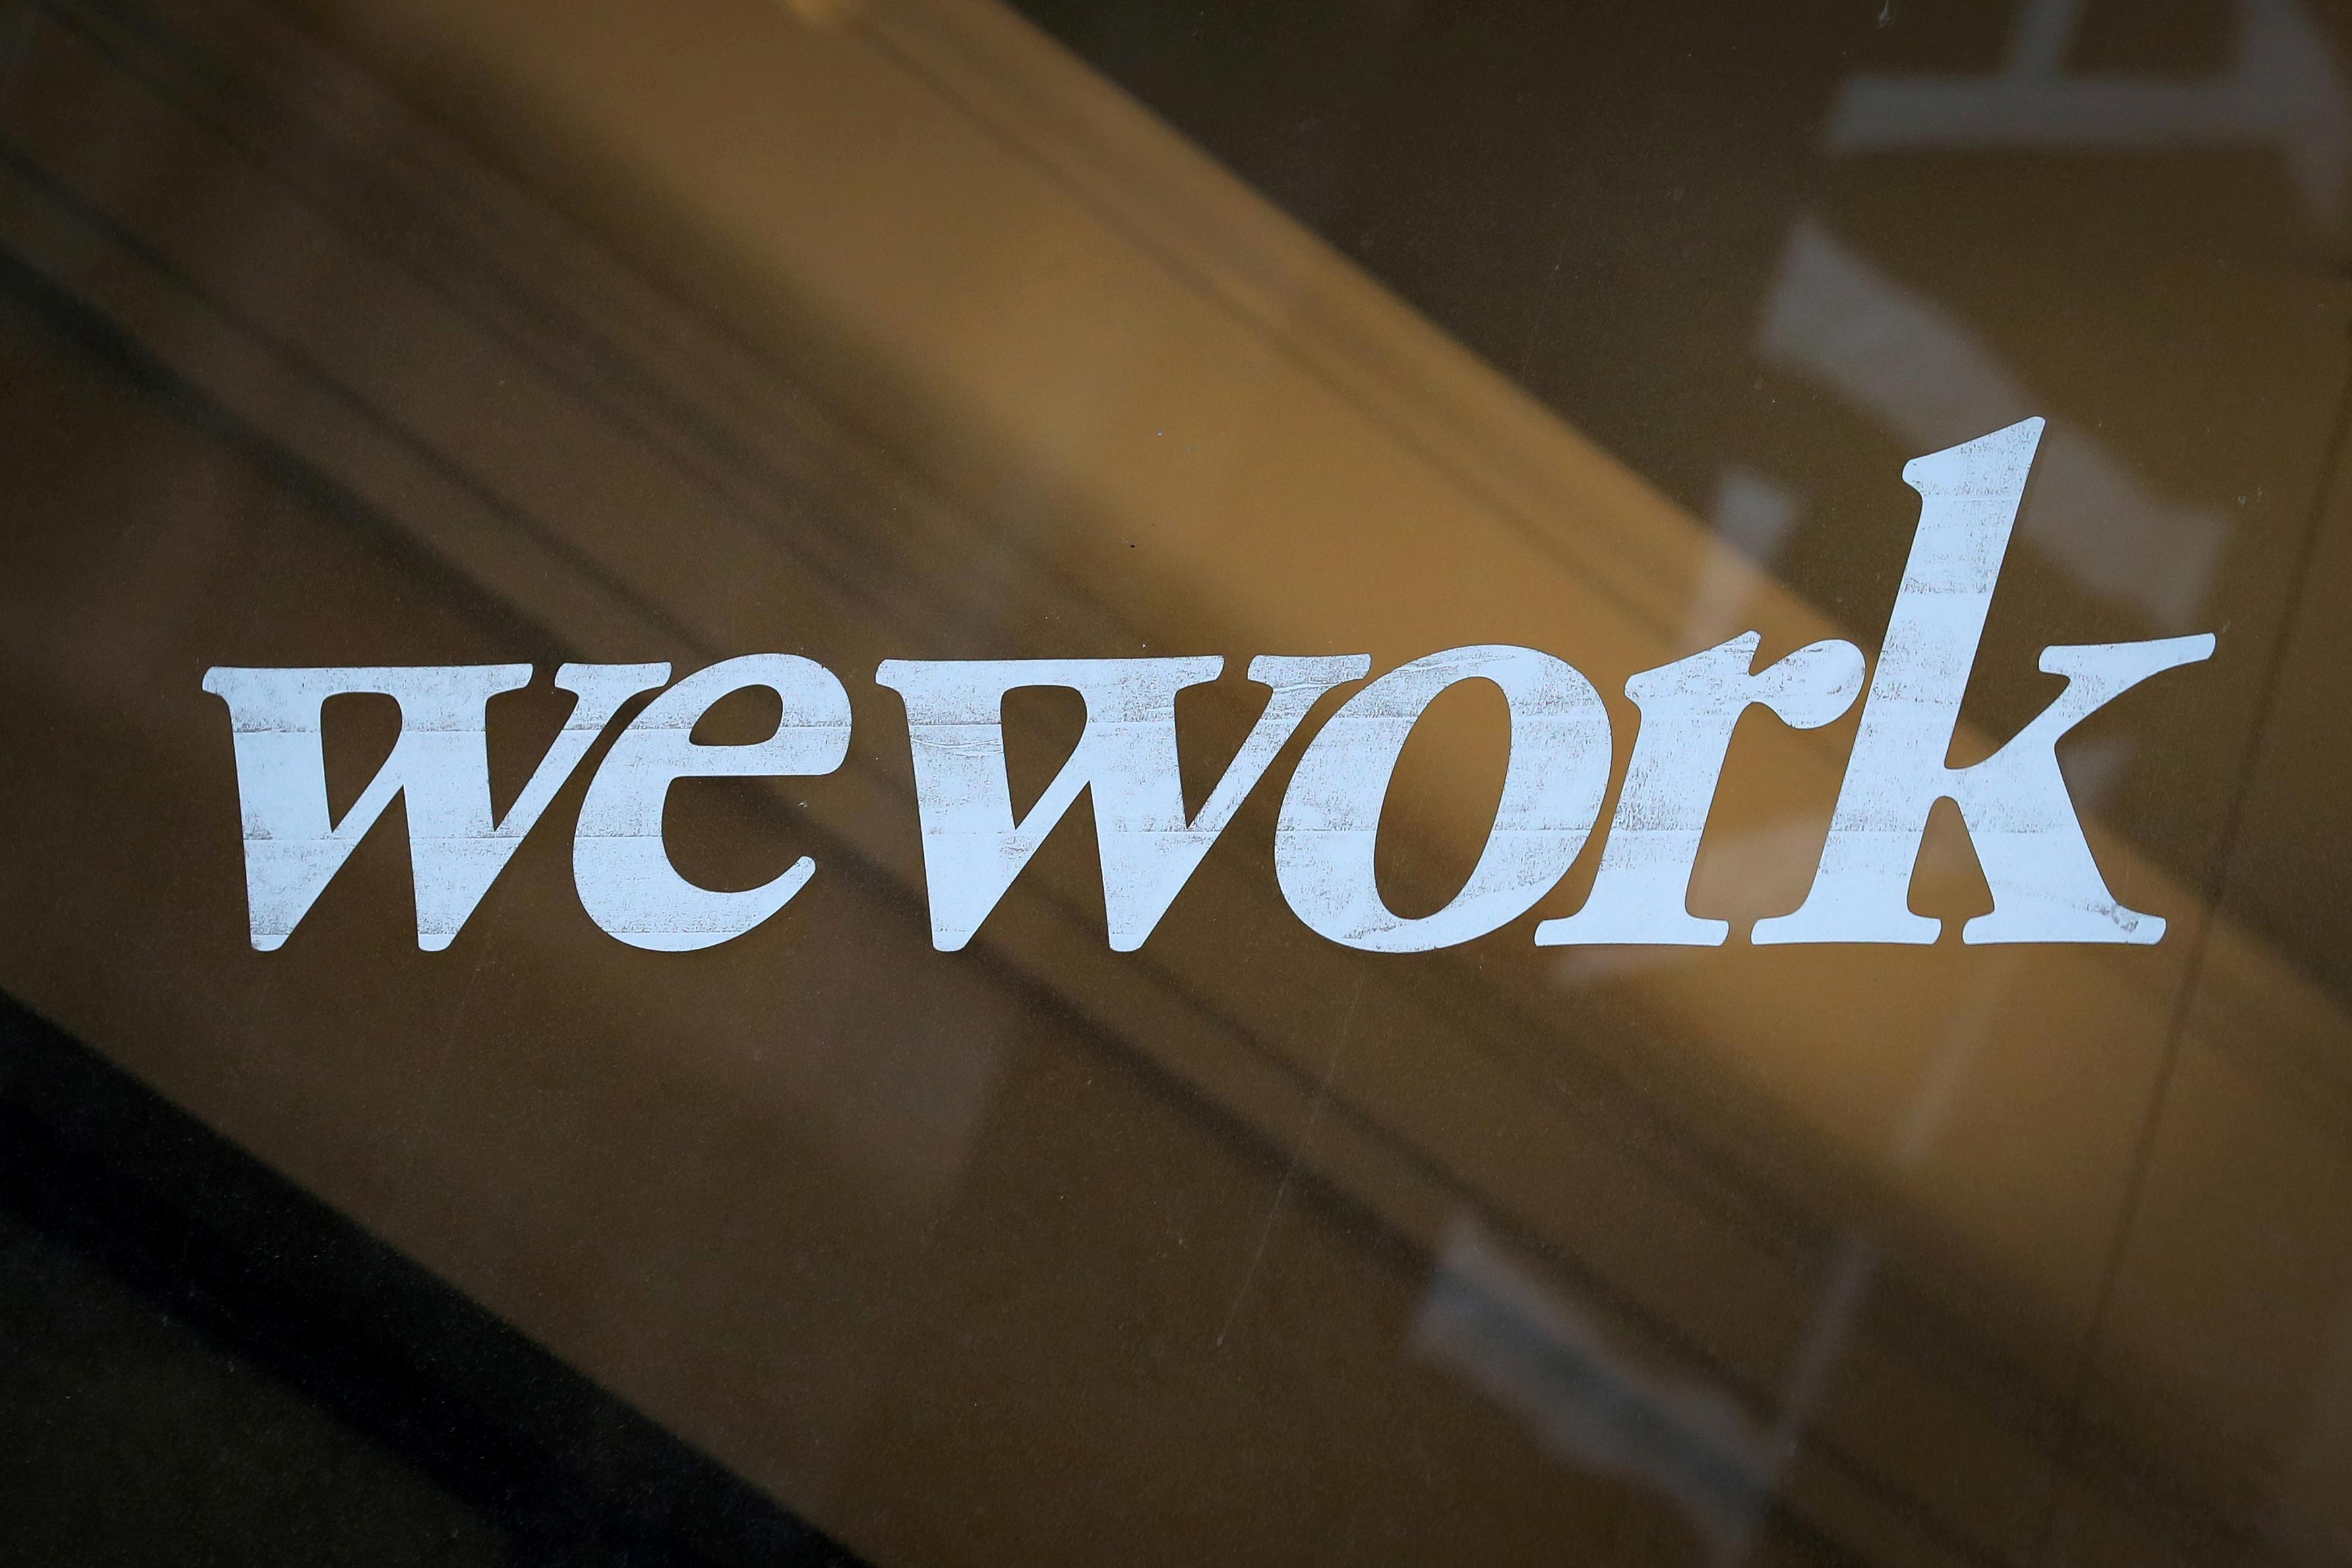 Exclusive: WeWork to press on with IPO launch despite valuation concerns - sources